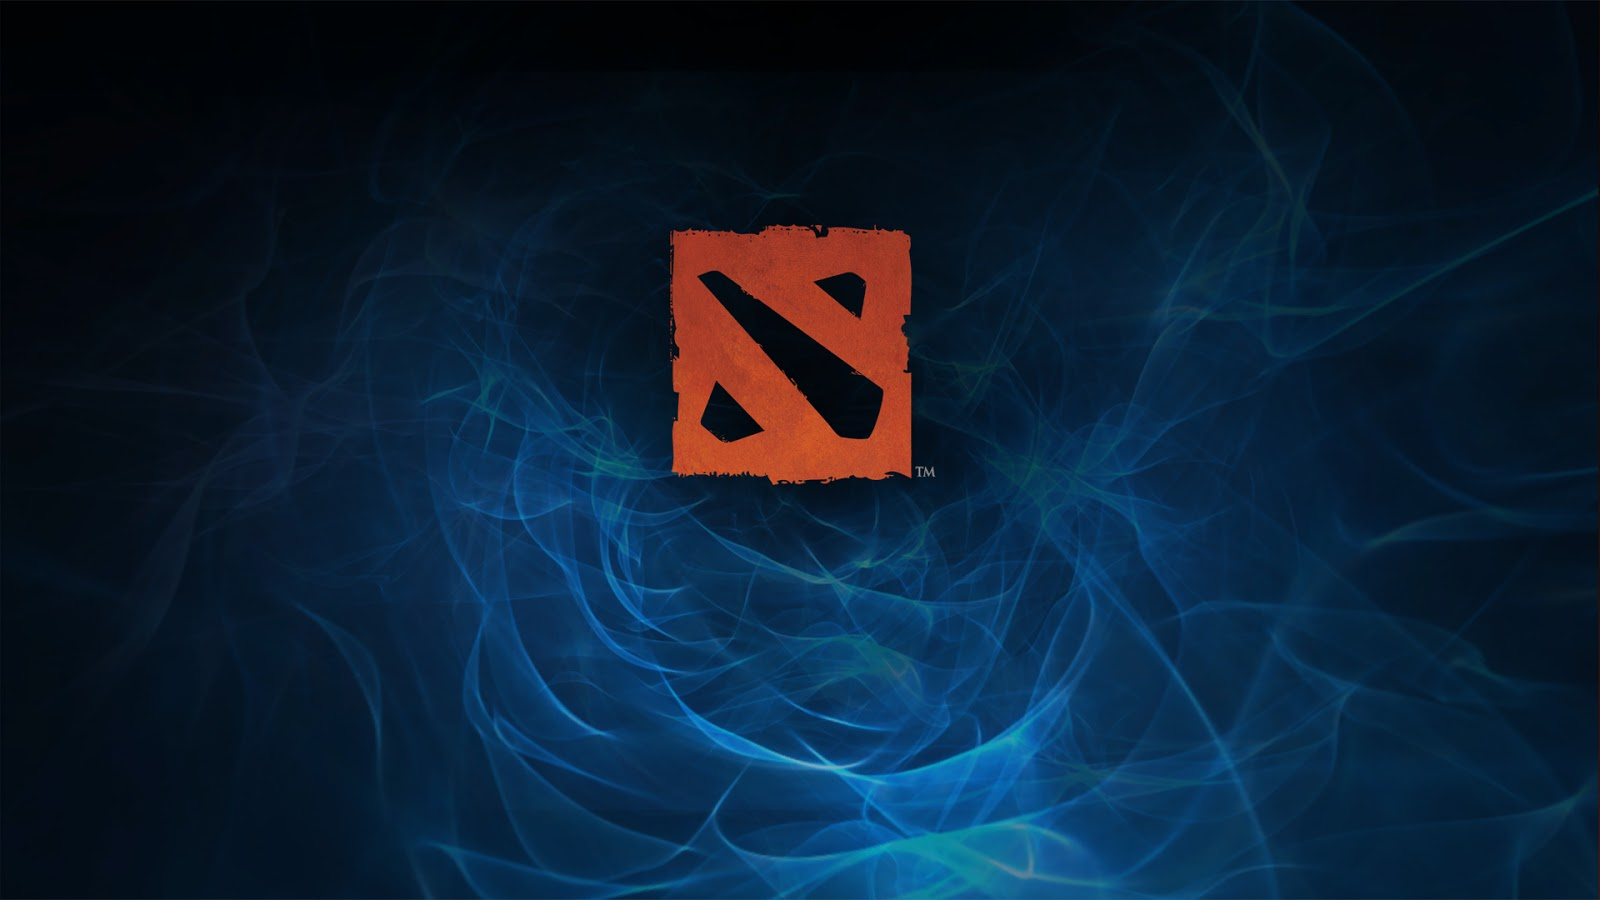 Dota 2: How To Switch Dota 2 International UI